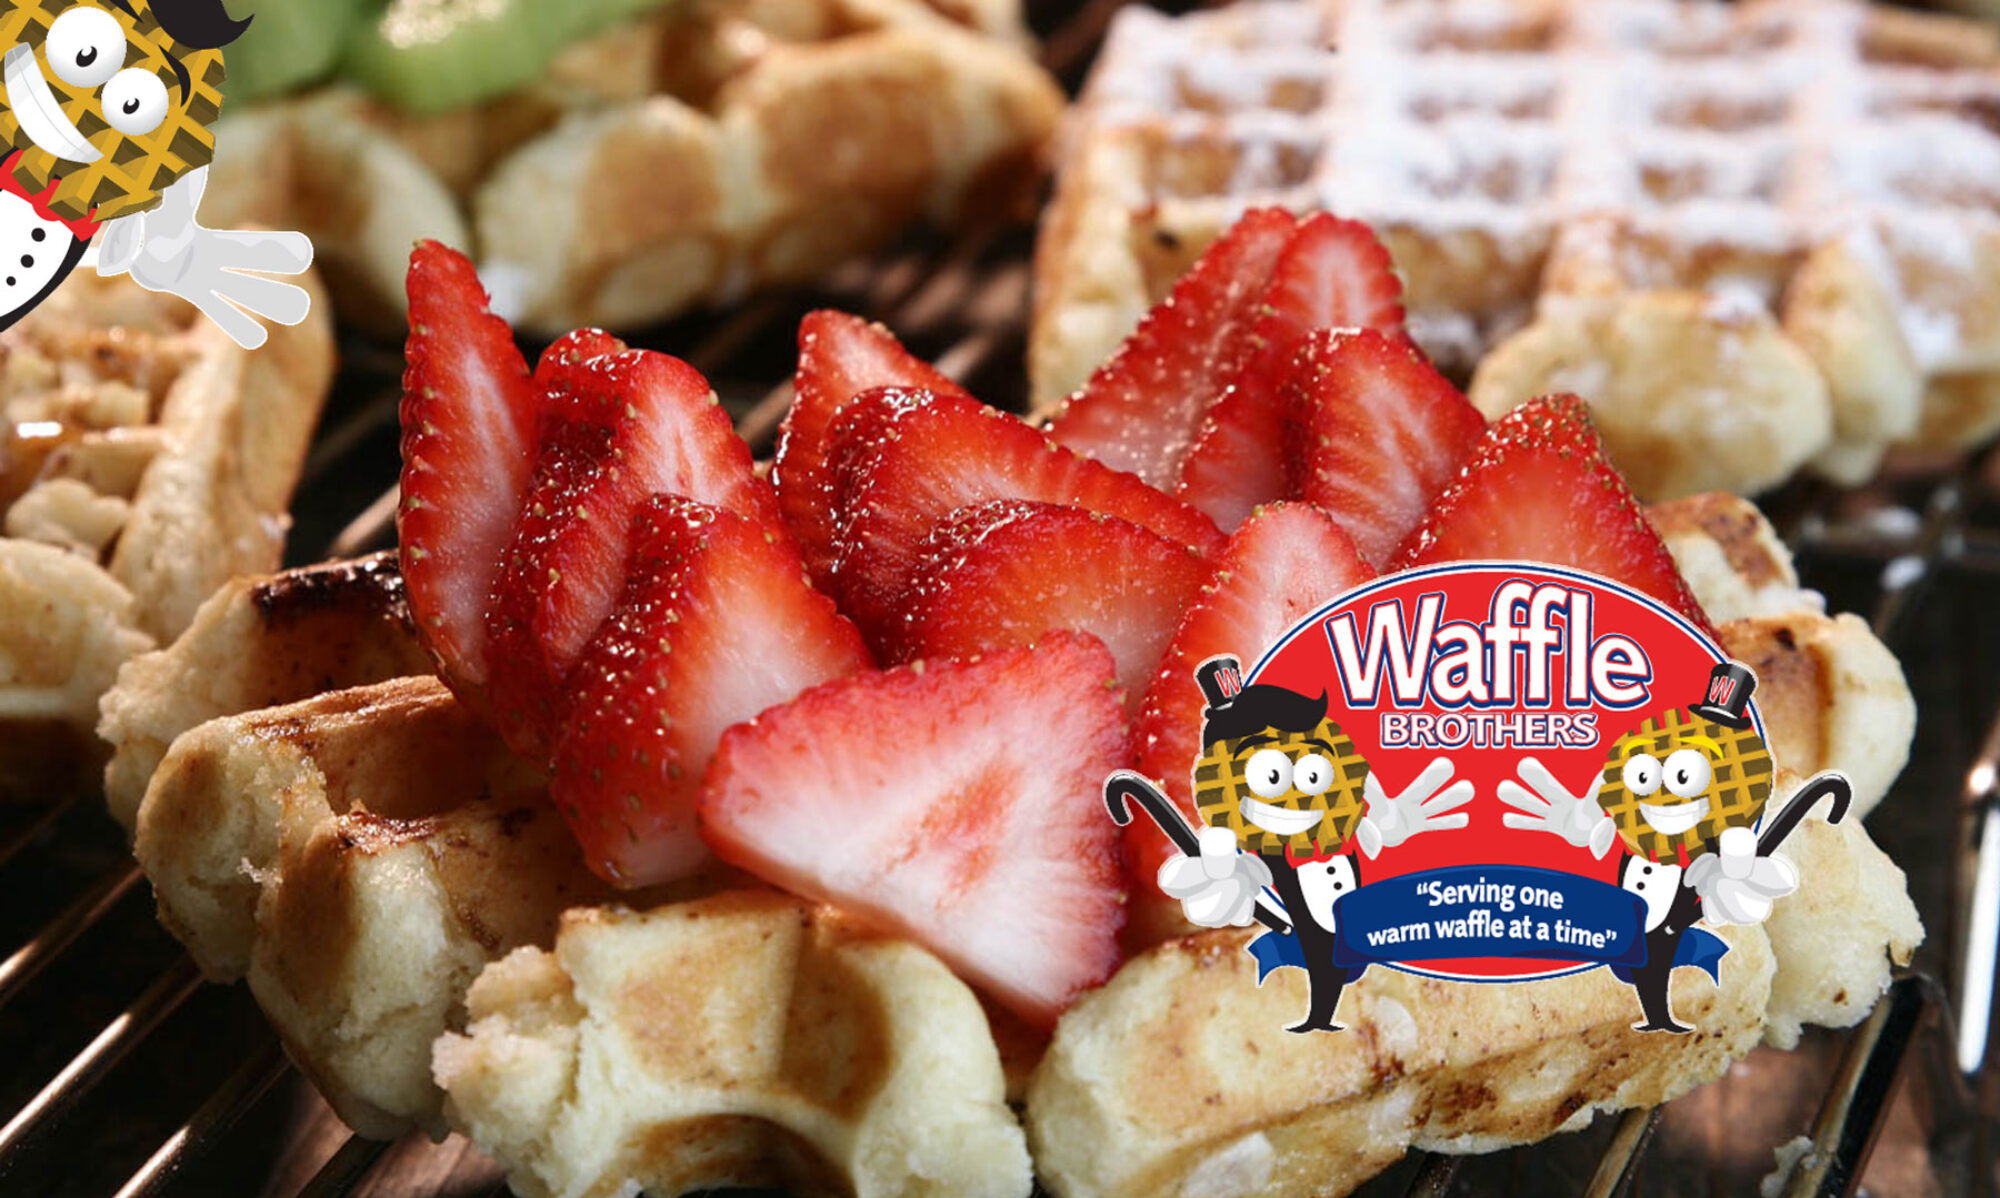 Waffle Brothers